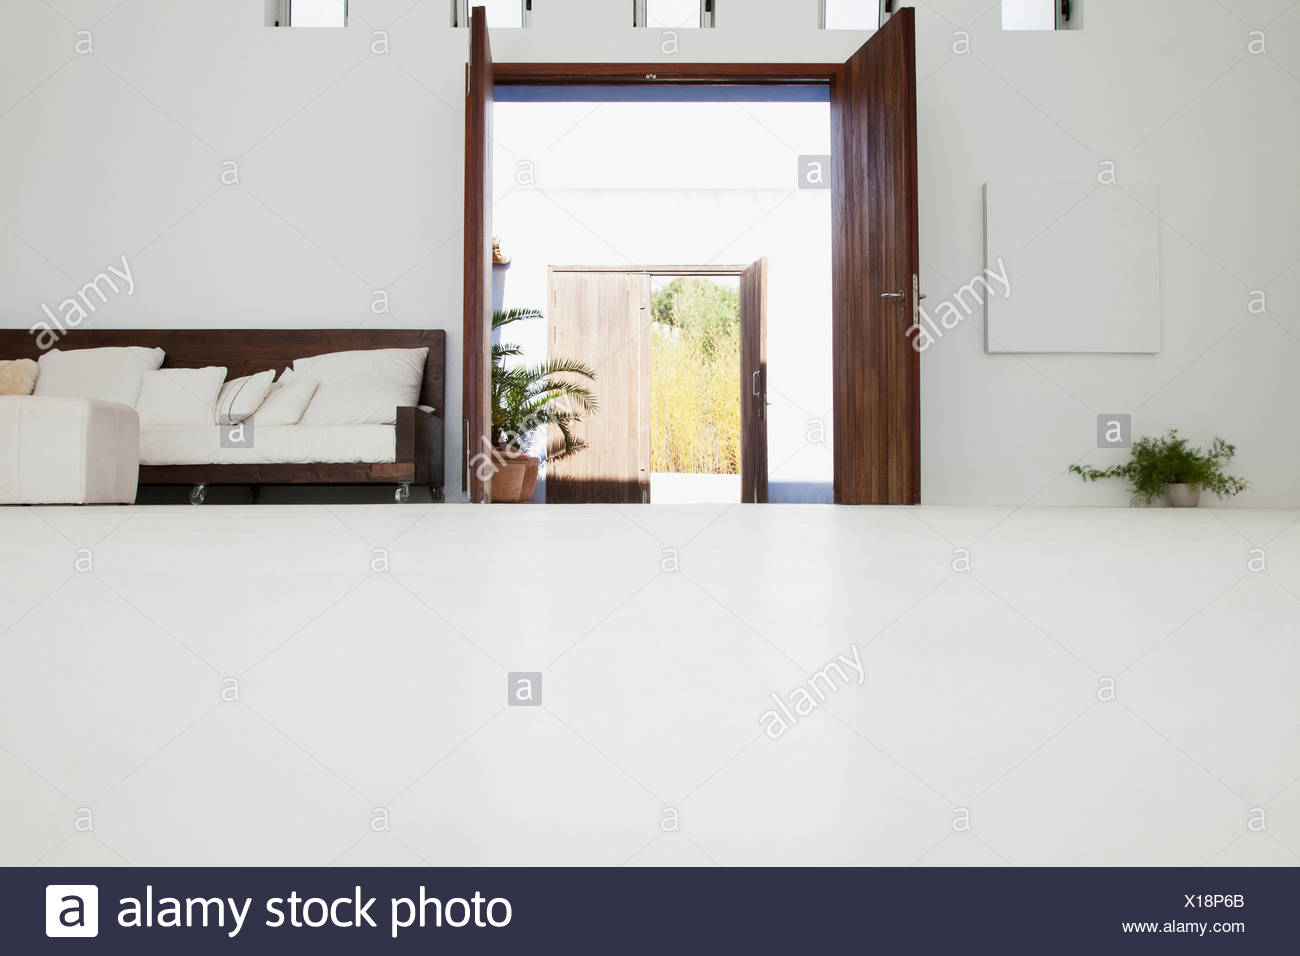 Room in modern house - Stock Image